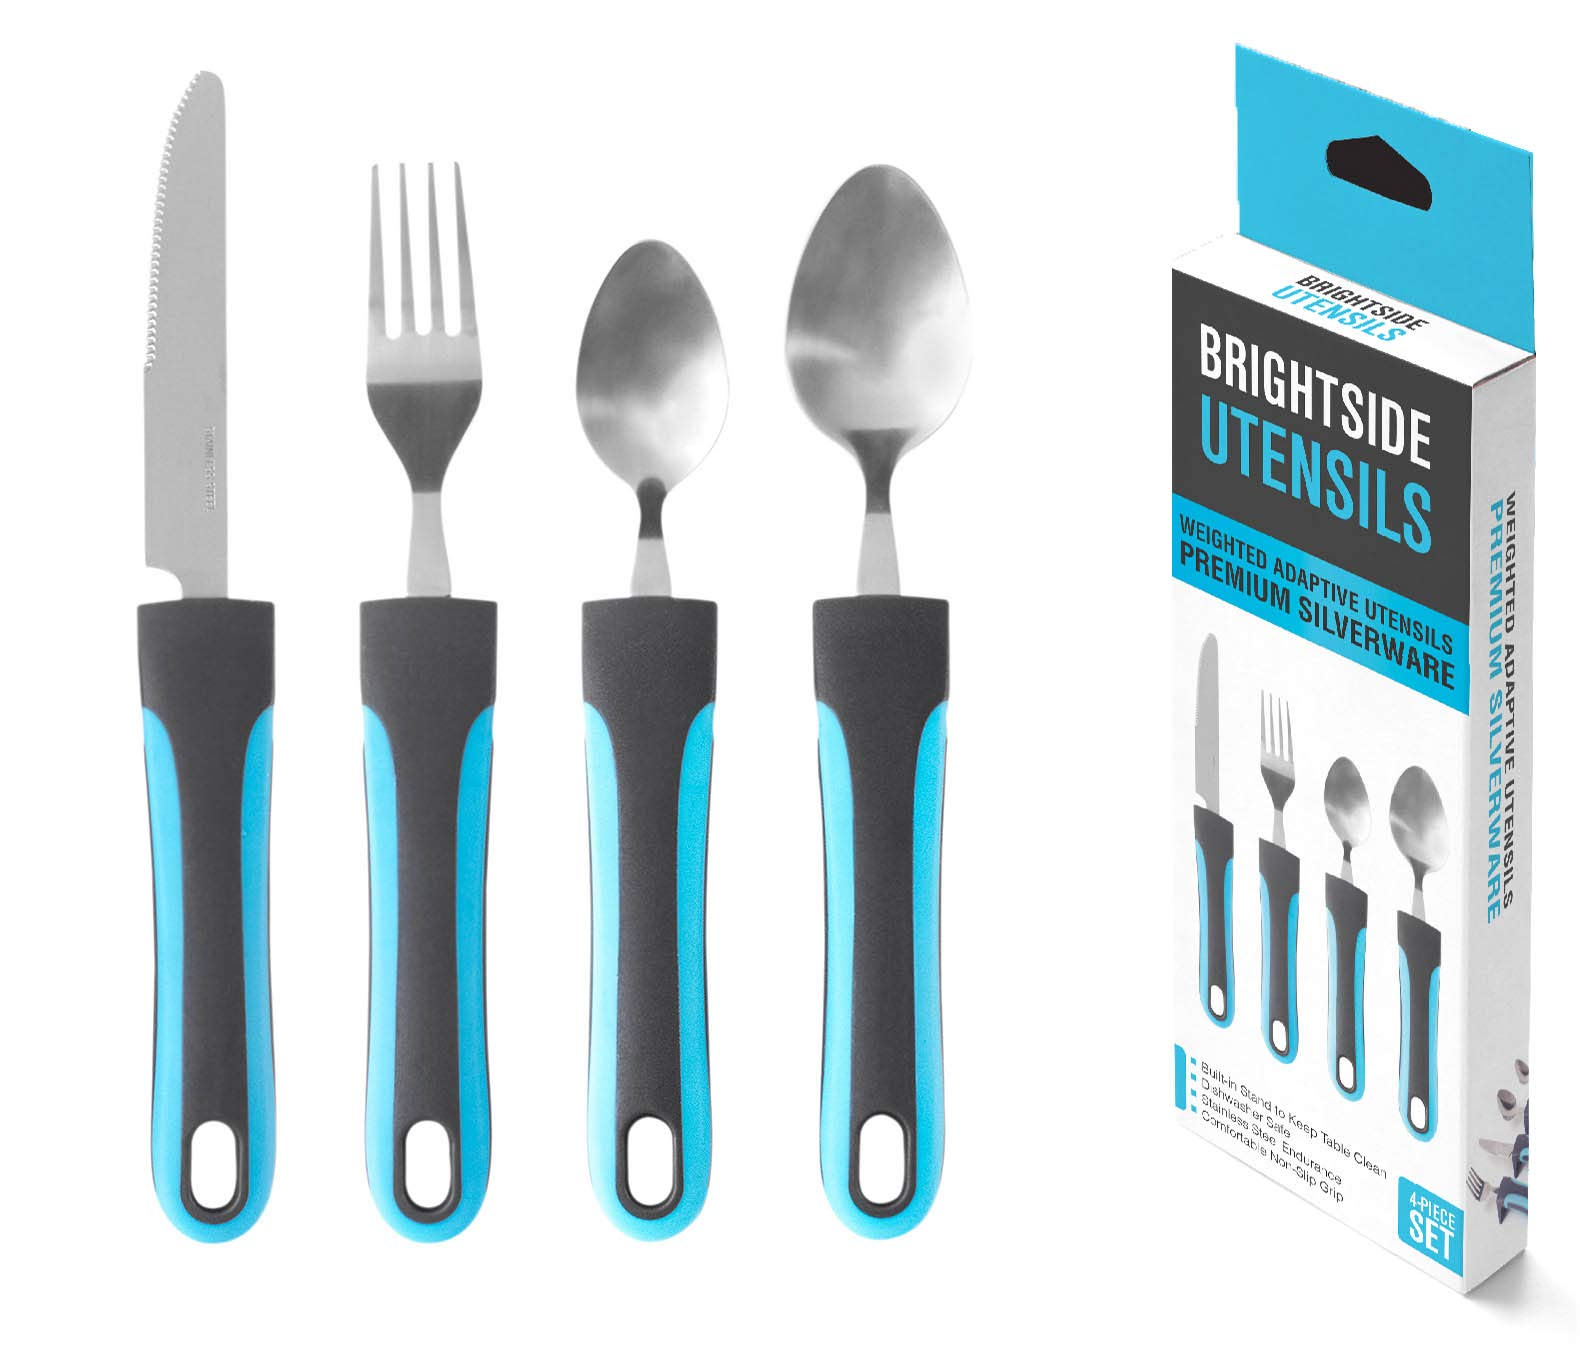 Adaptive Weighted Utensils Premium Silverware (4-Piece Set) - 1 Knife, 1 Fork and 2 Spoons with Weighted, Non Slip Handles for Elderly, Tremors, Arthritis & Disabled